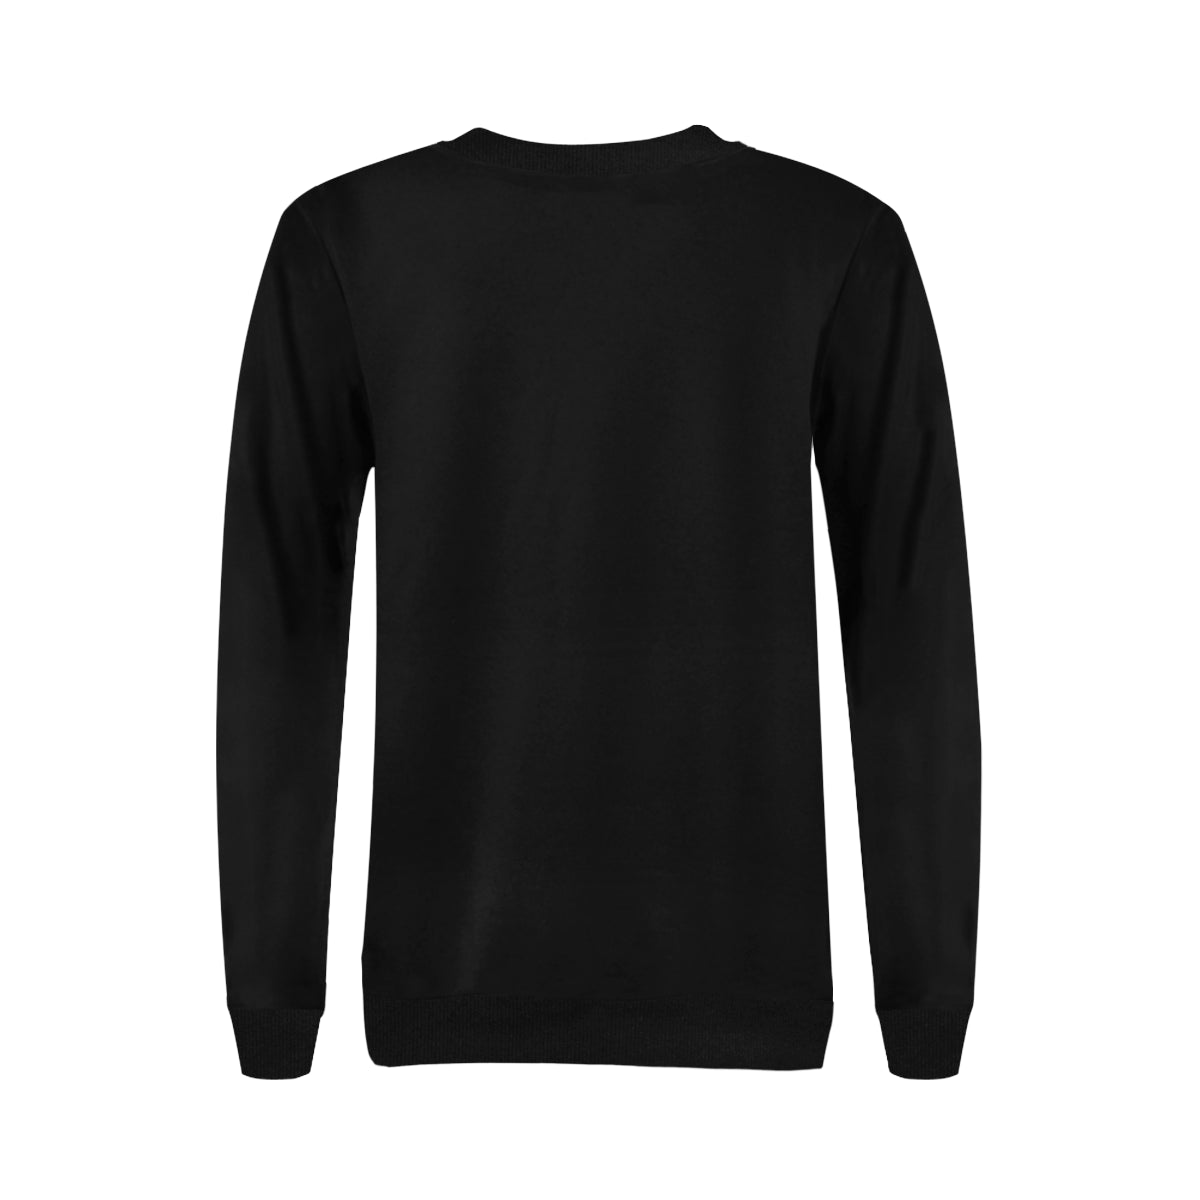 MADINI Long Sleeve Sweatshirt